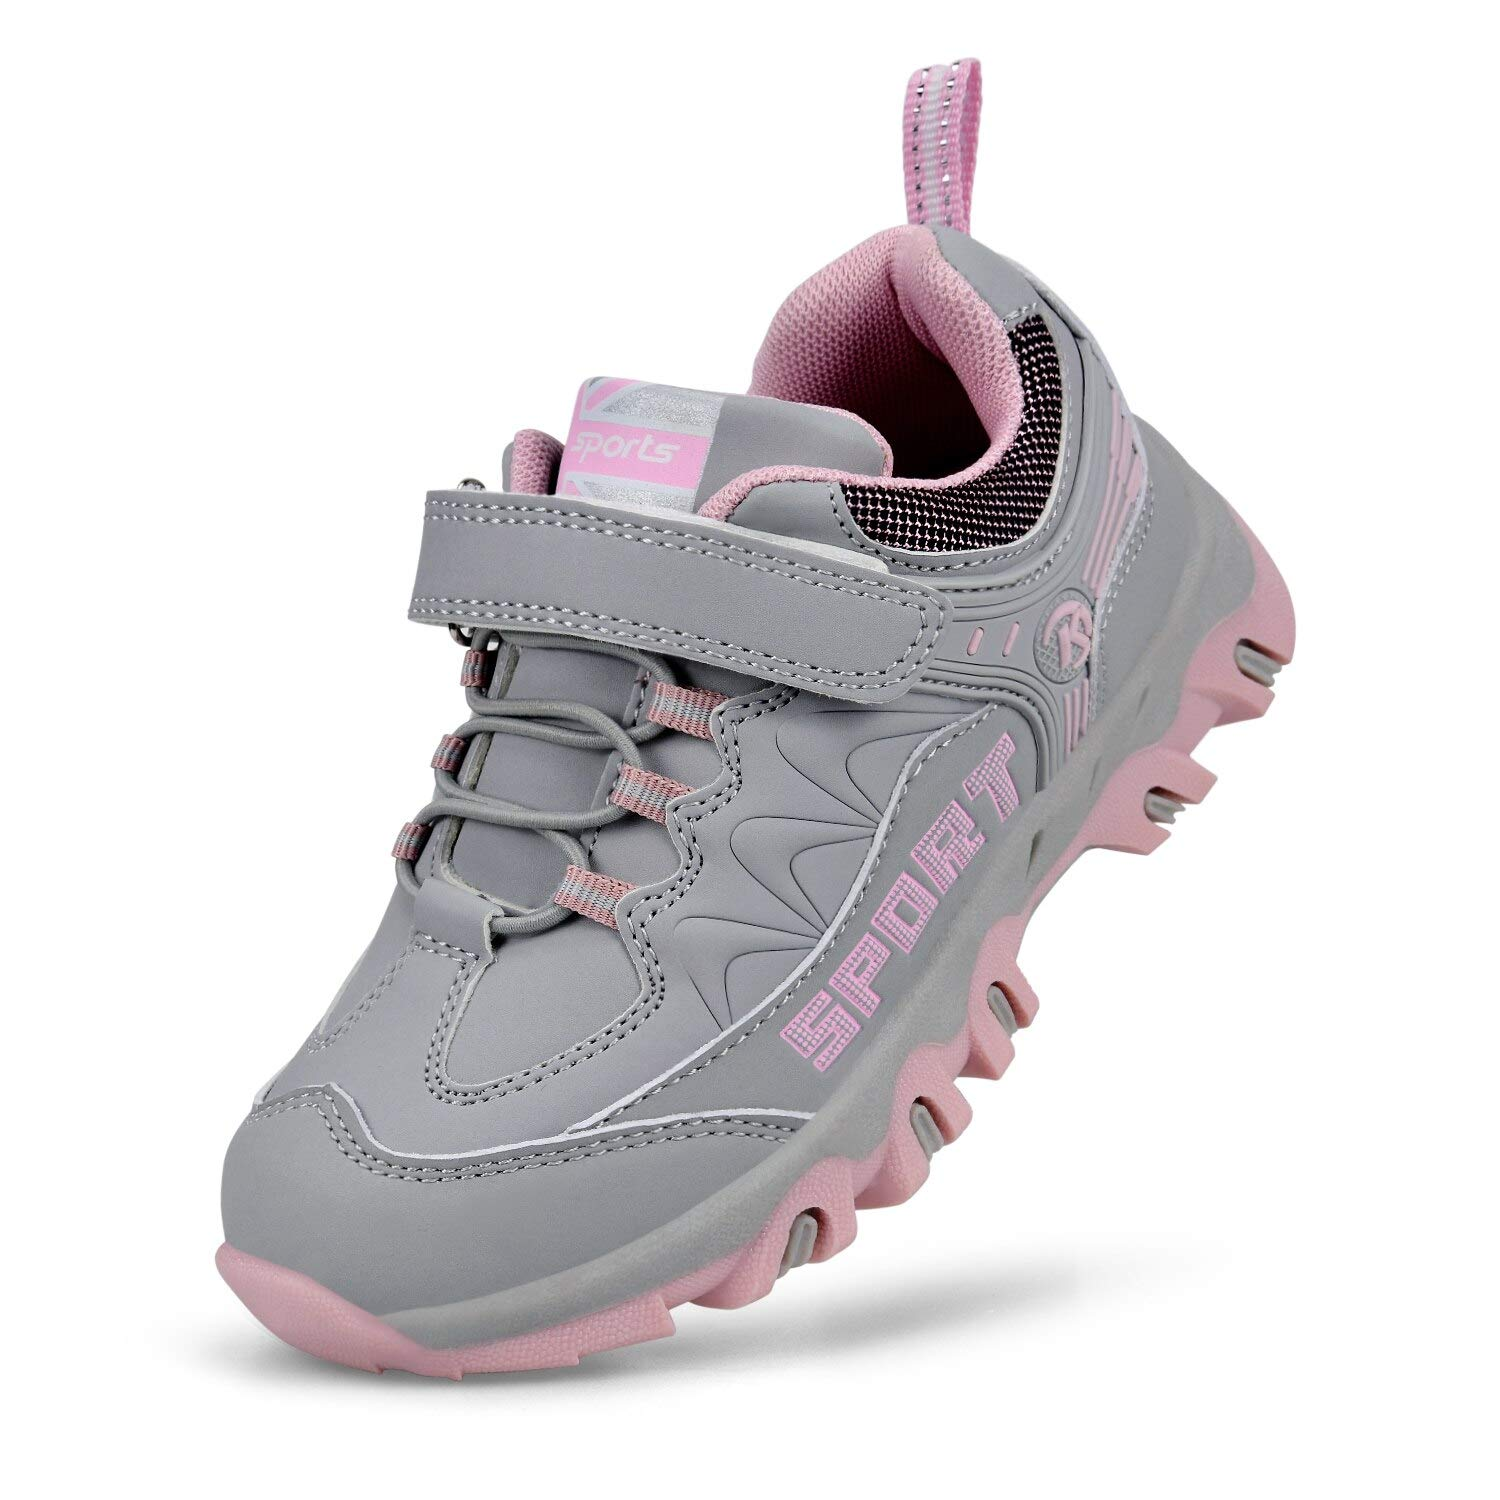 MARSVOVO Girls Red Shoes Outdoor Waterproof Hiking Shoes Running Shoes Grey/Pink 9 Todder by MARSVOVO